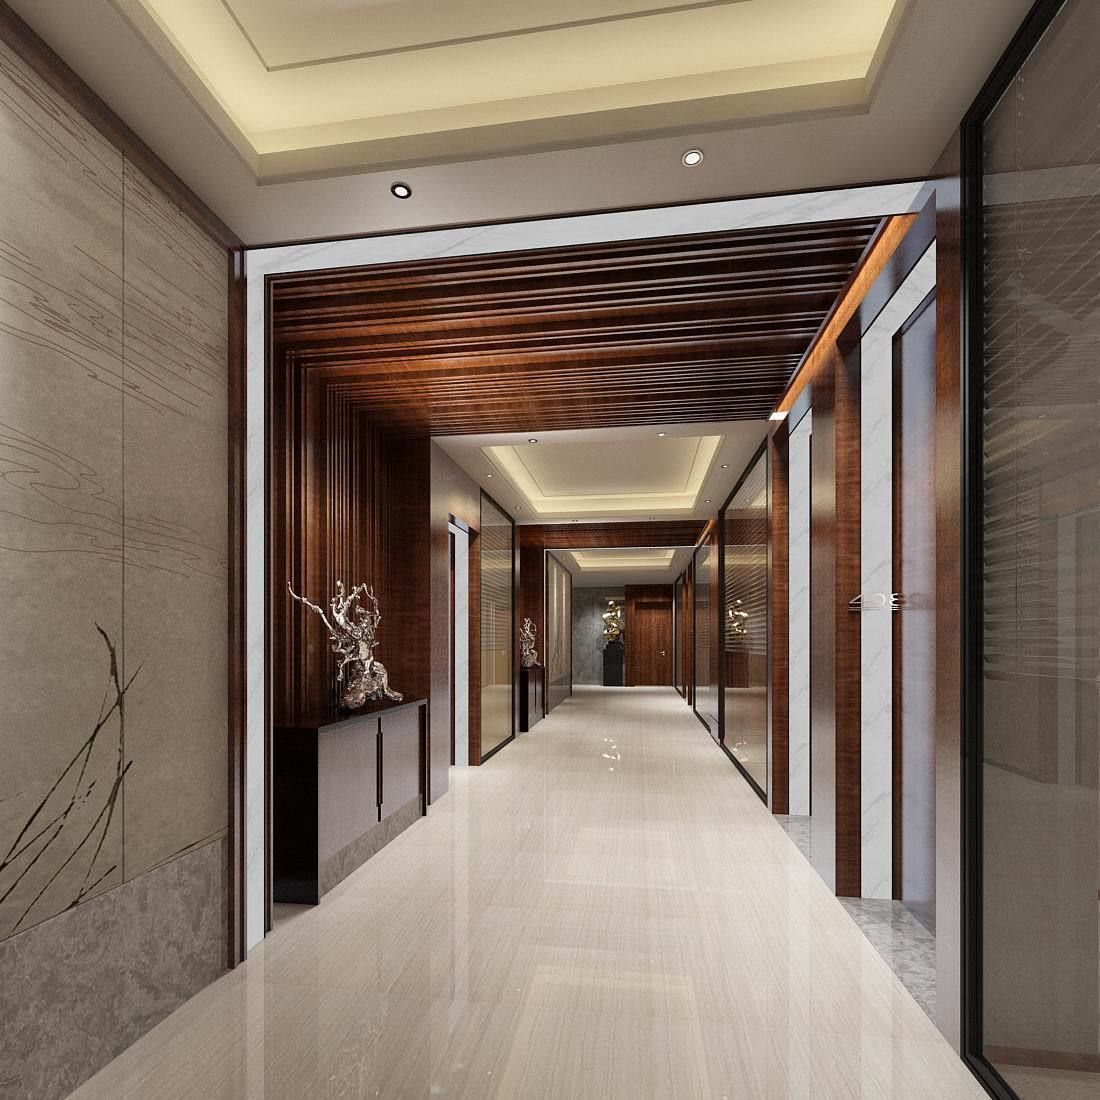 Office Receptiondesign:  Office Reception Hall Design Complete 05 3D Model